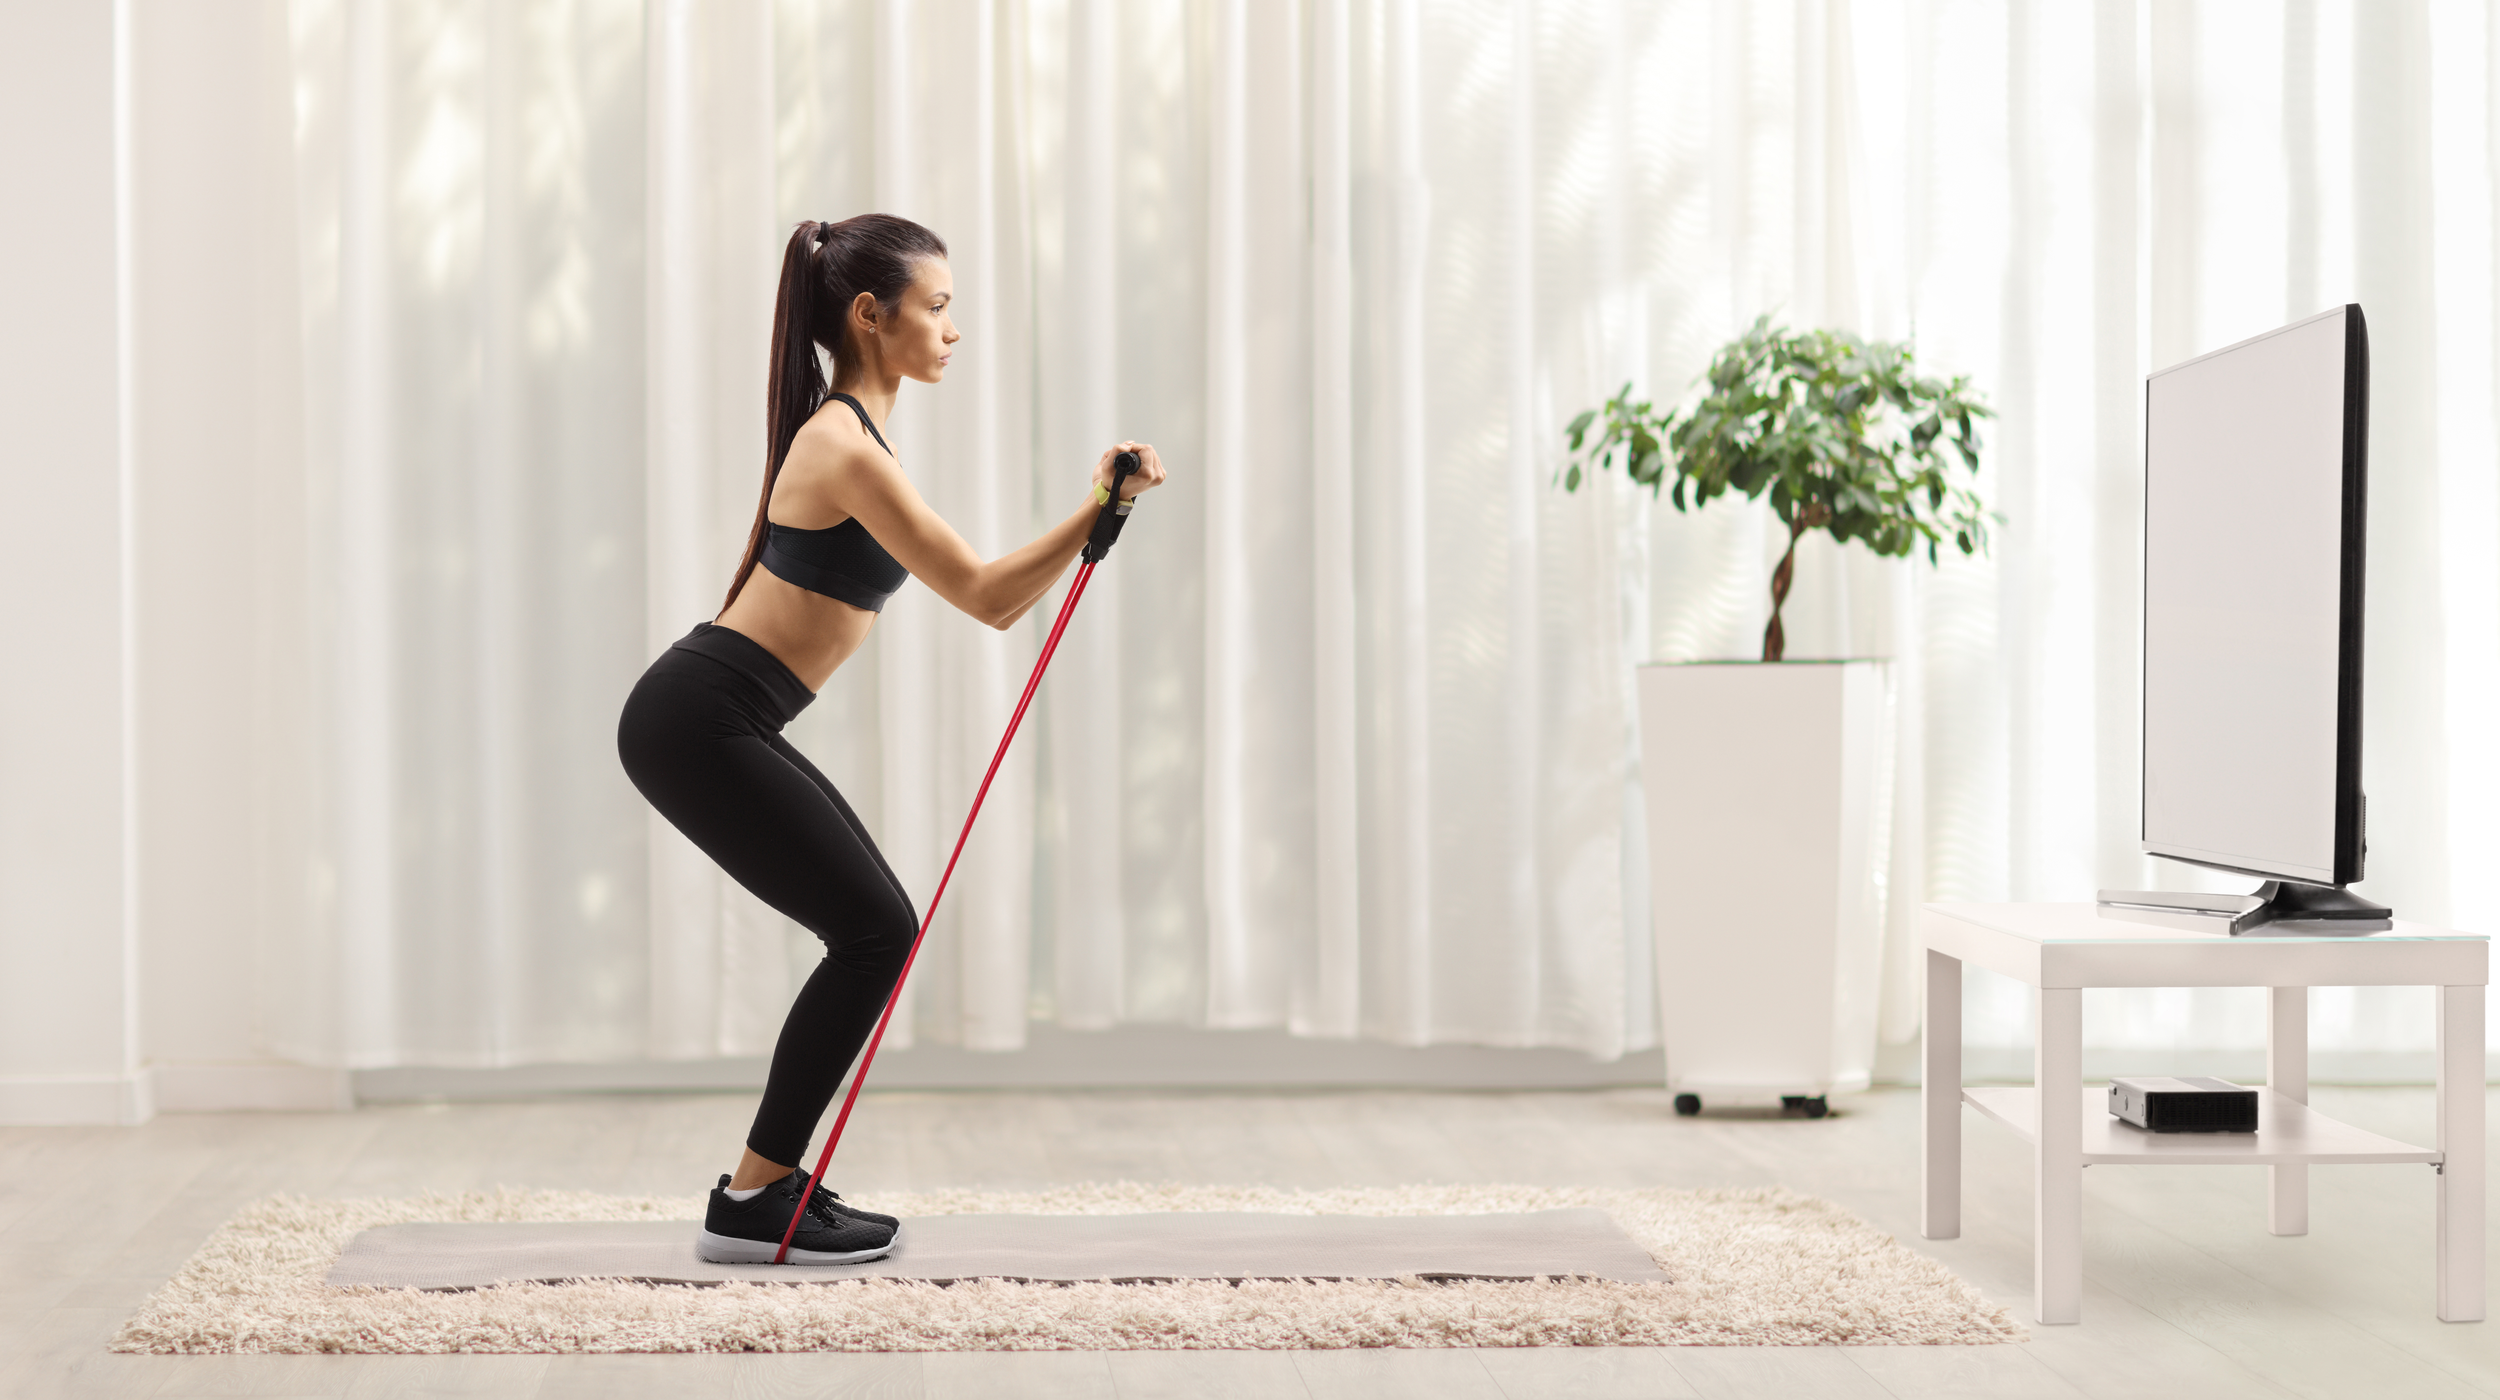 Is it Hard to Resistance Train at Home?